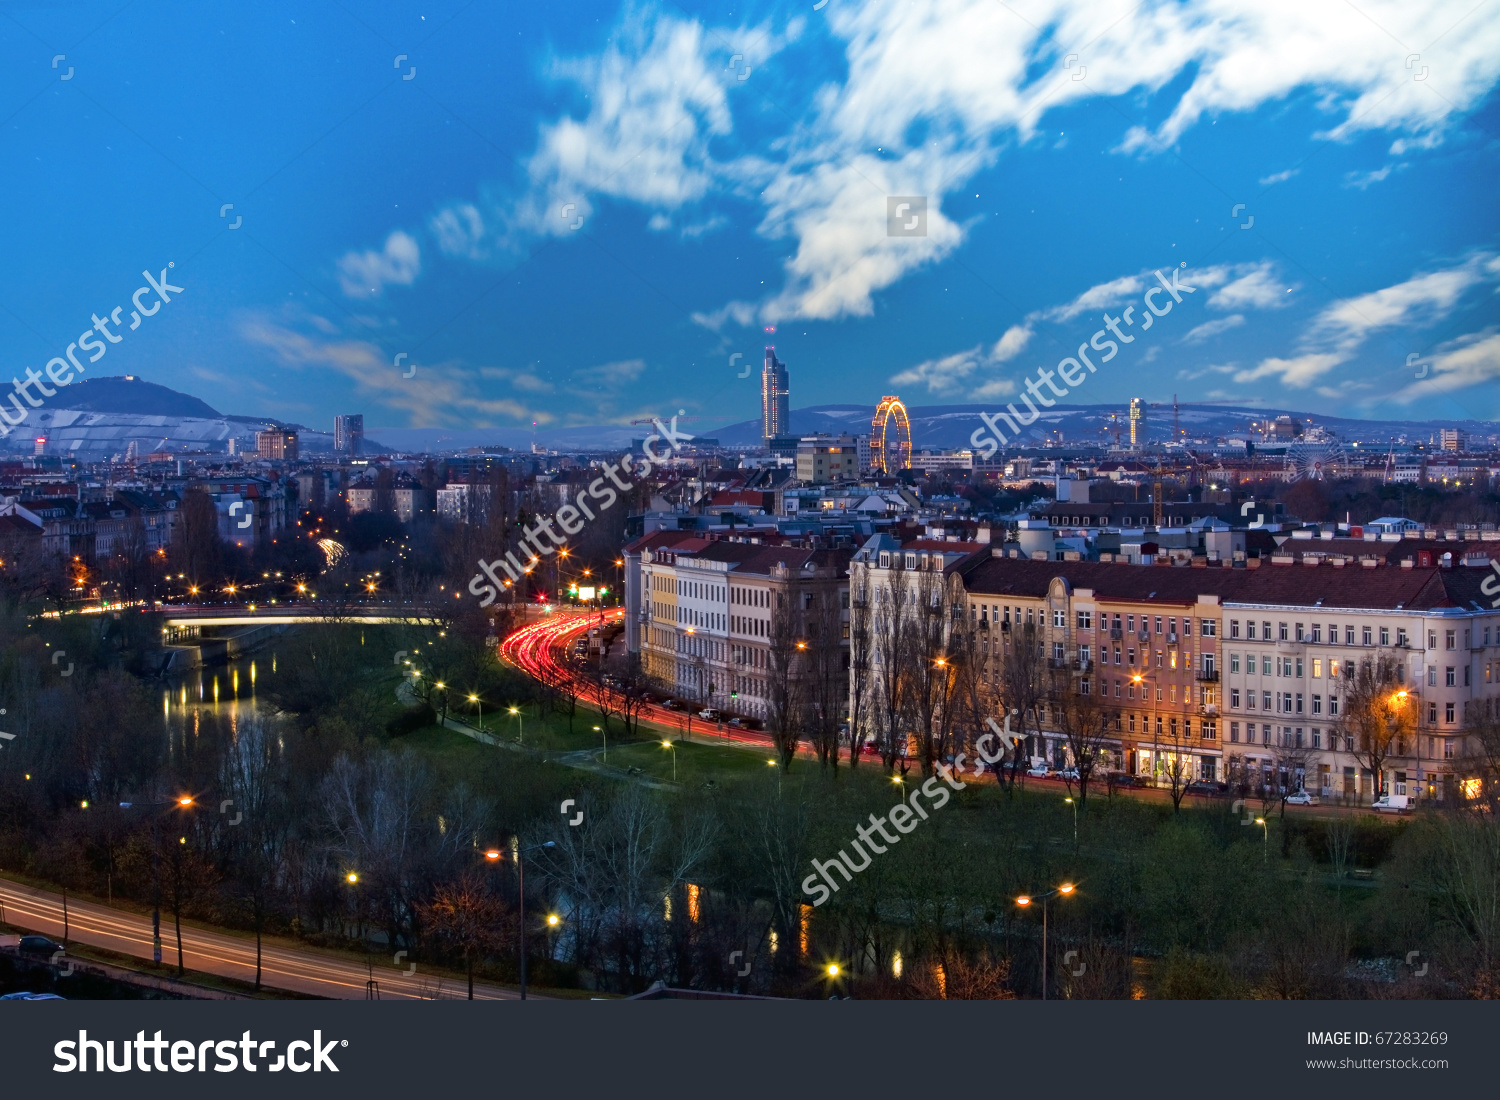 Skyline Danube Valley Vienna Night Stock Photo 67283269.